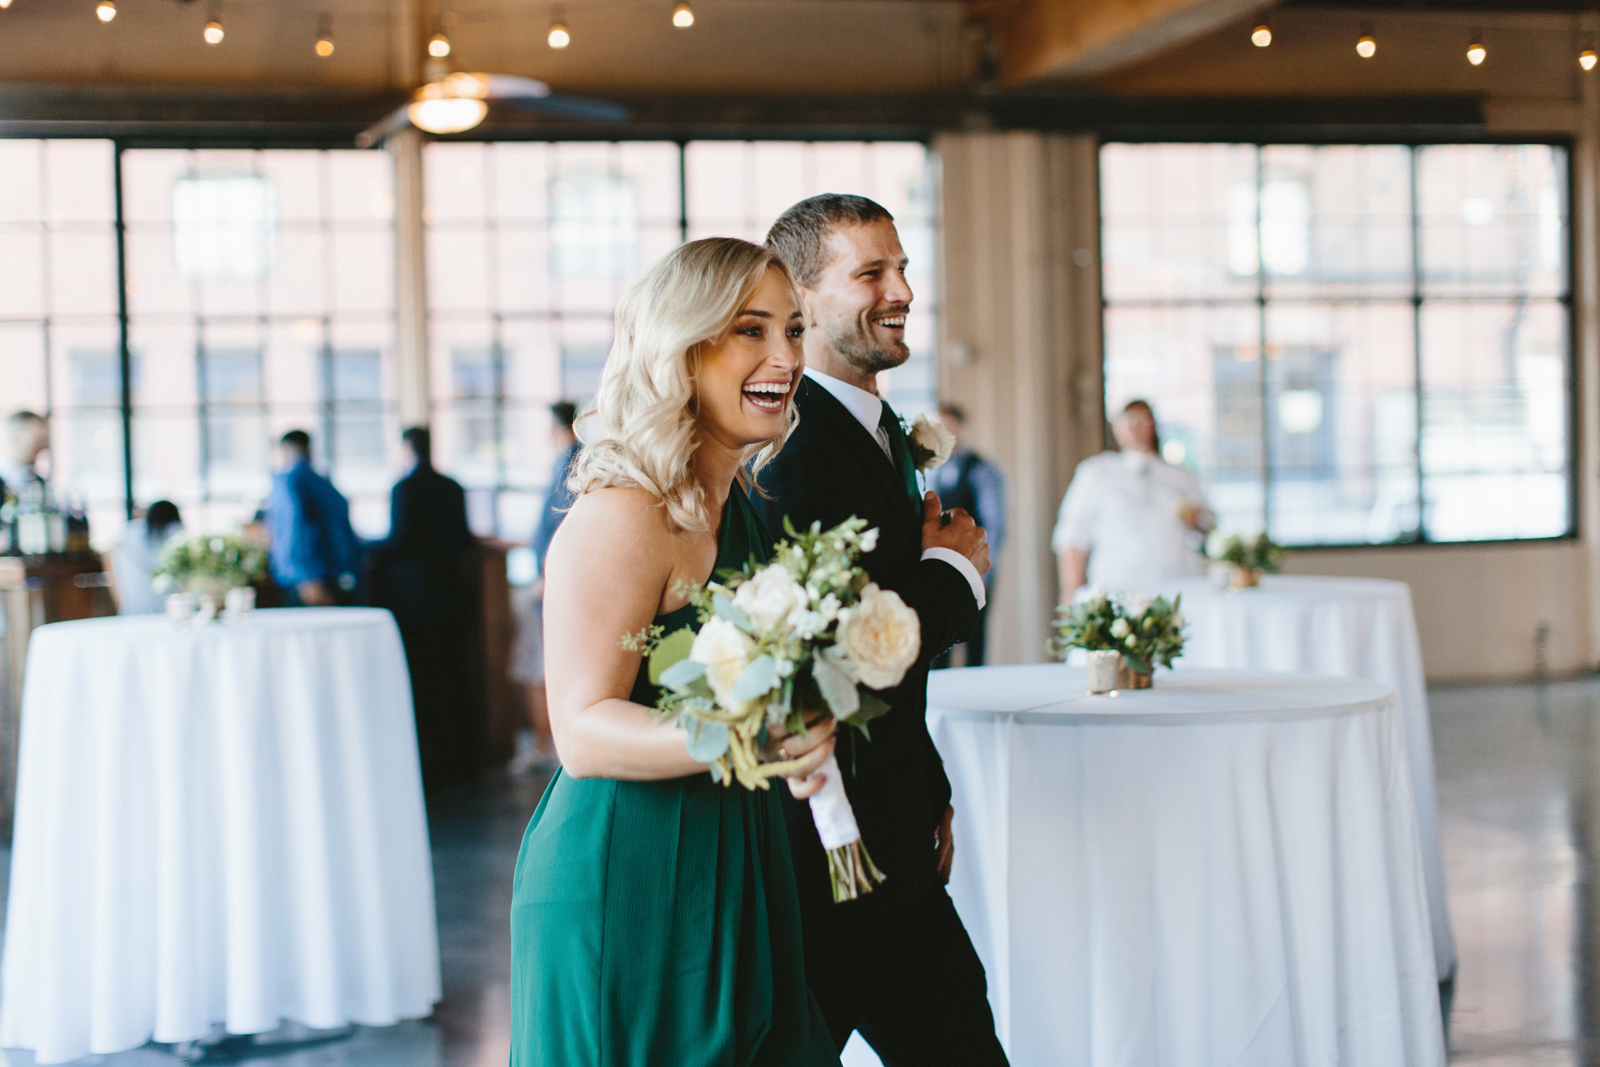 Castaway Portland wedding reception bridesmaid and groomsman